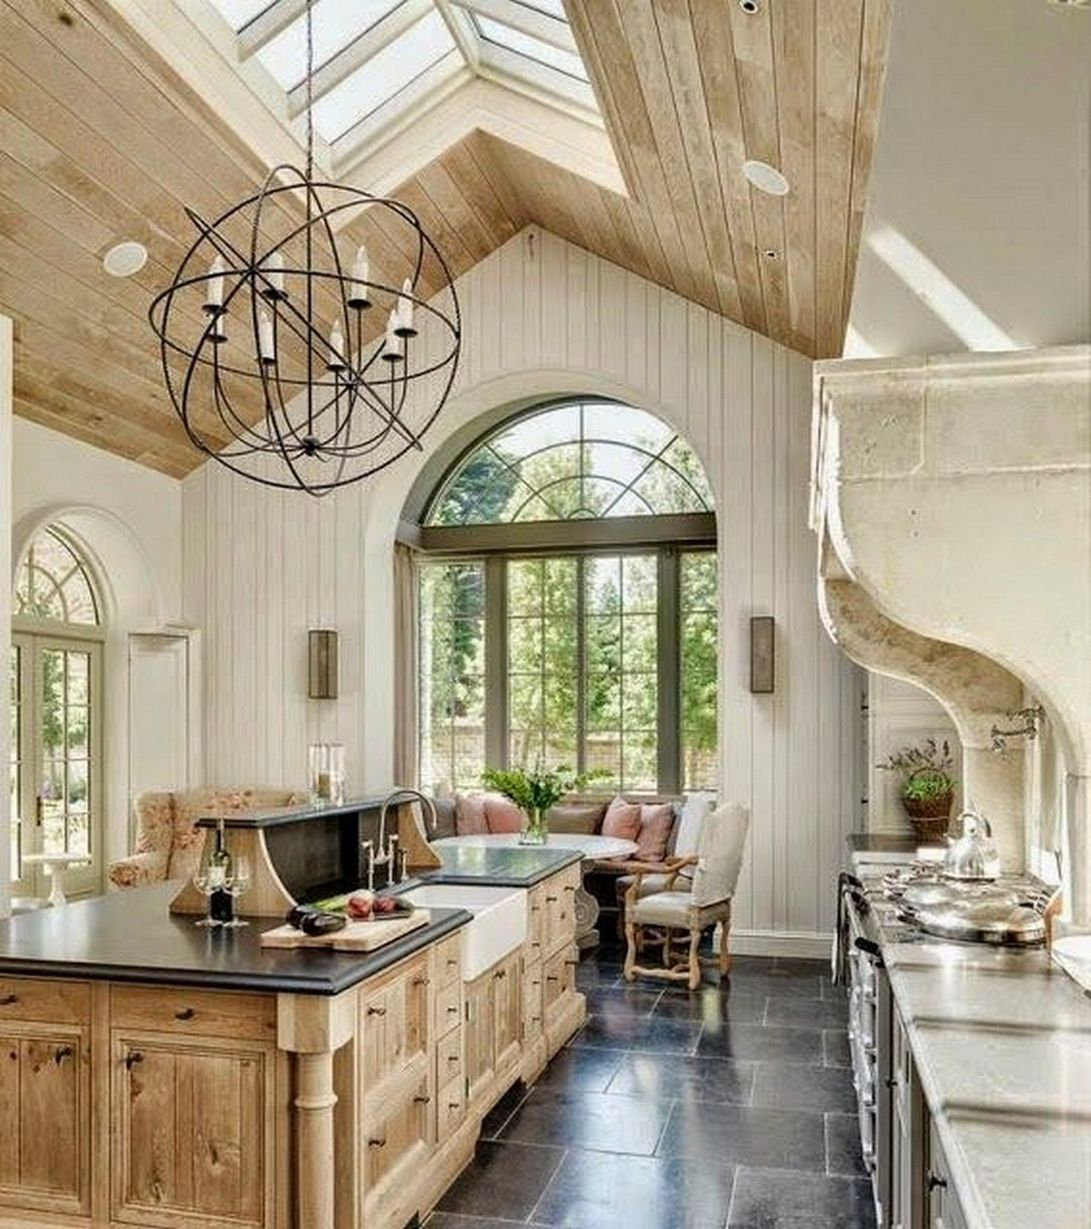 French Country Kitchens Light Pendants For Kitchen Pin By Andrea Nunley On Designs 50 Best Design Ideas Amp Remodel Pict Http Decorspace